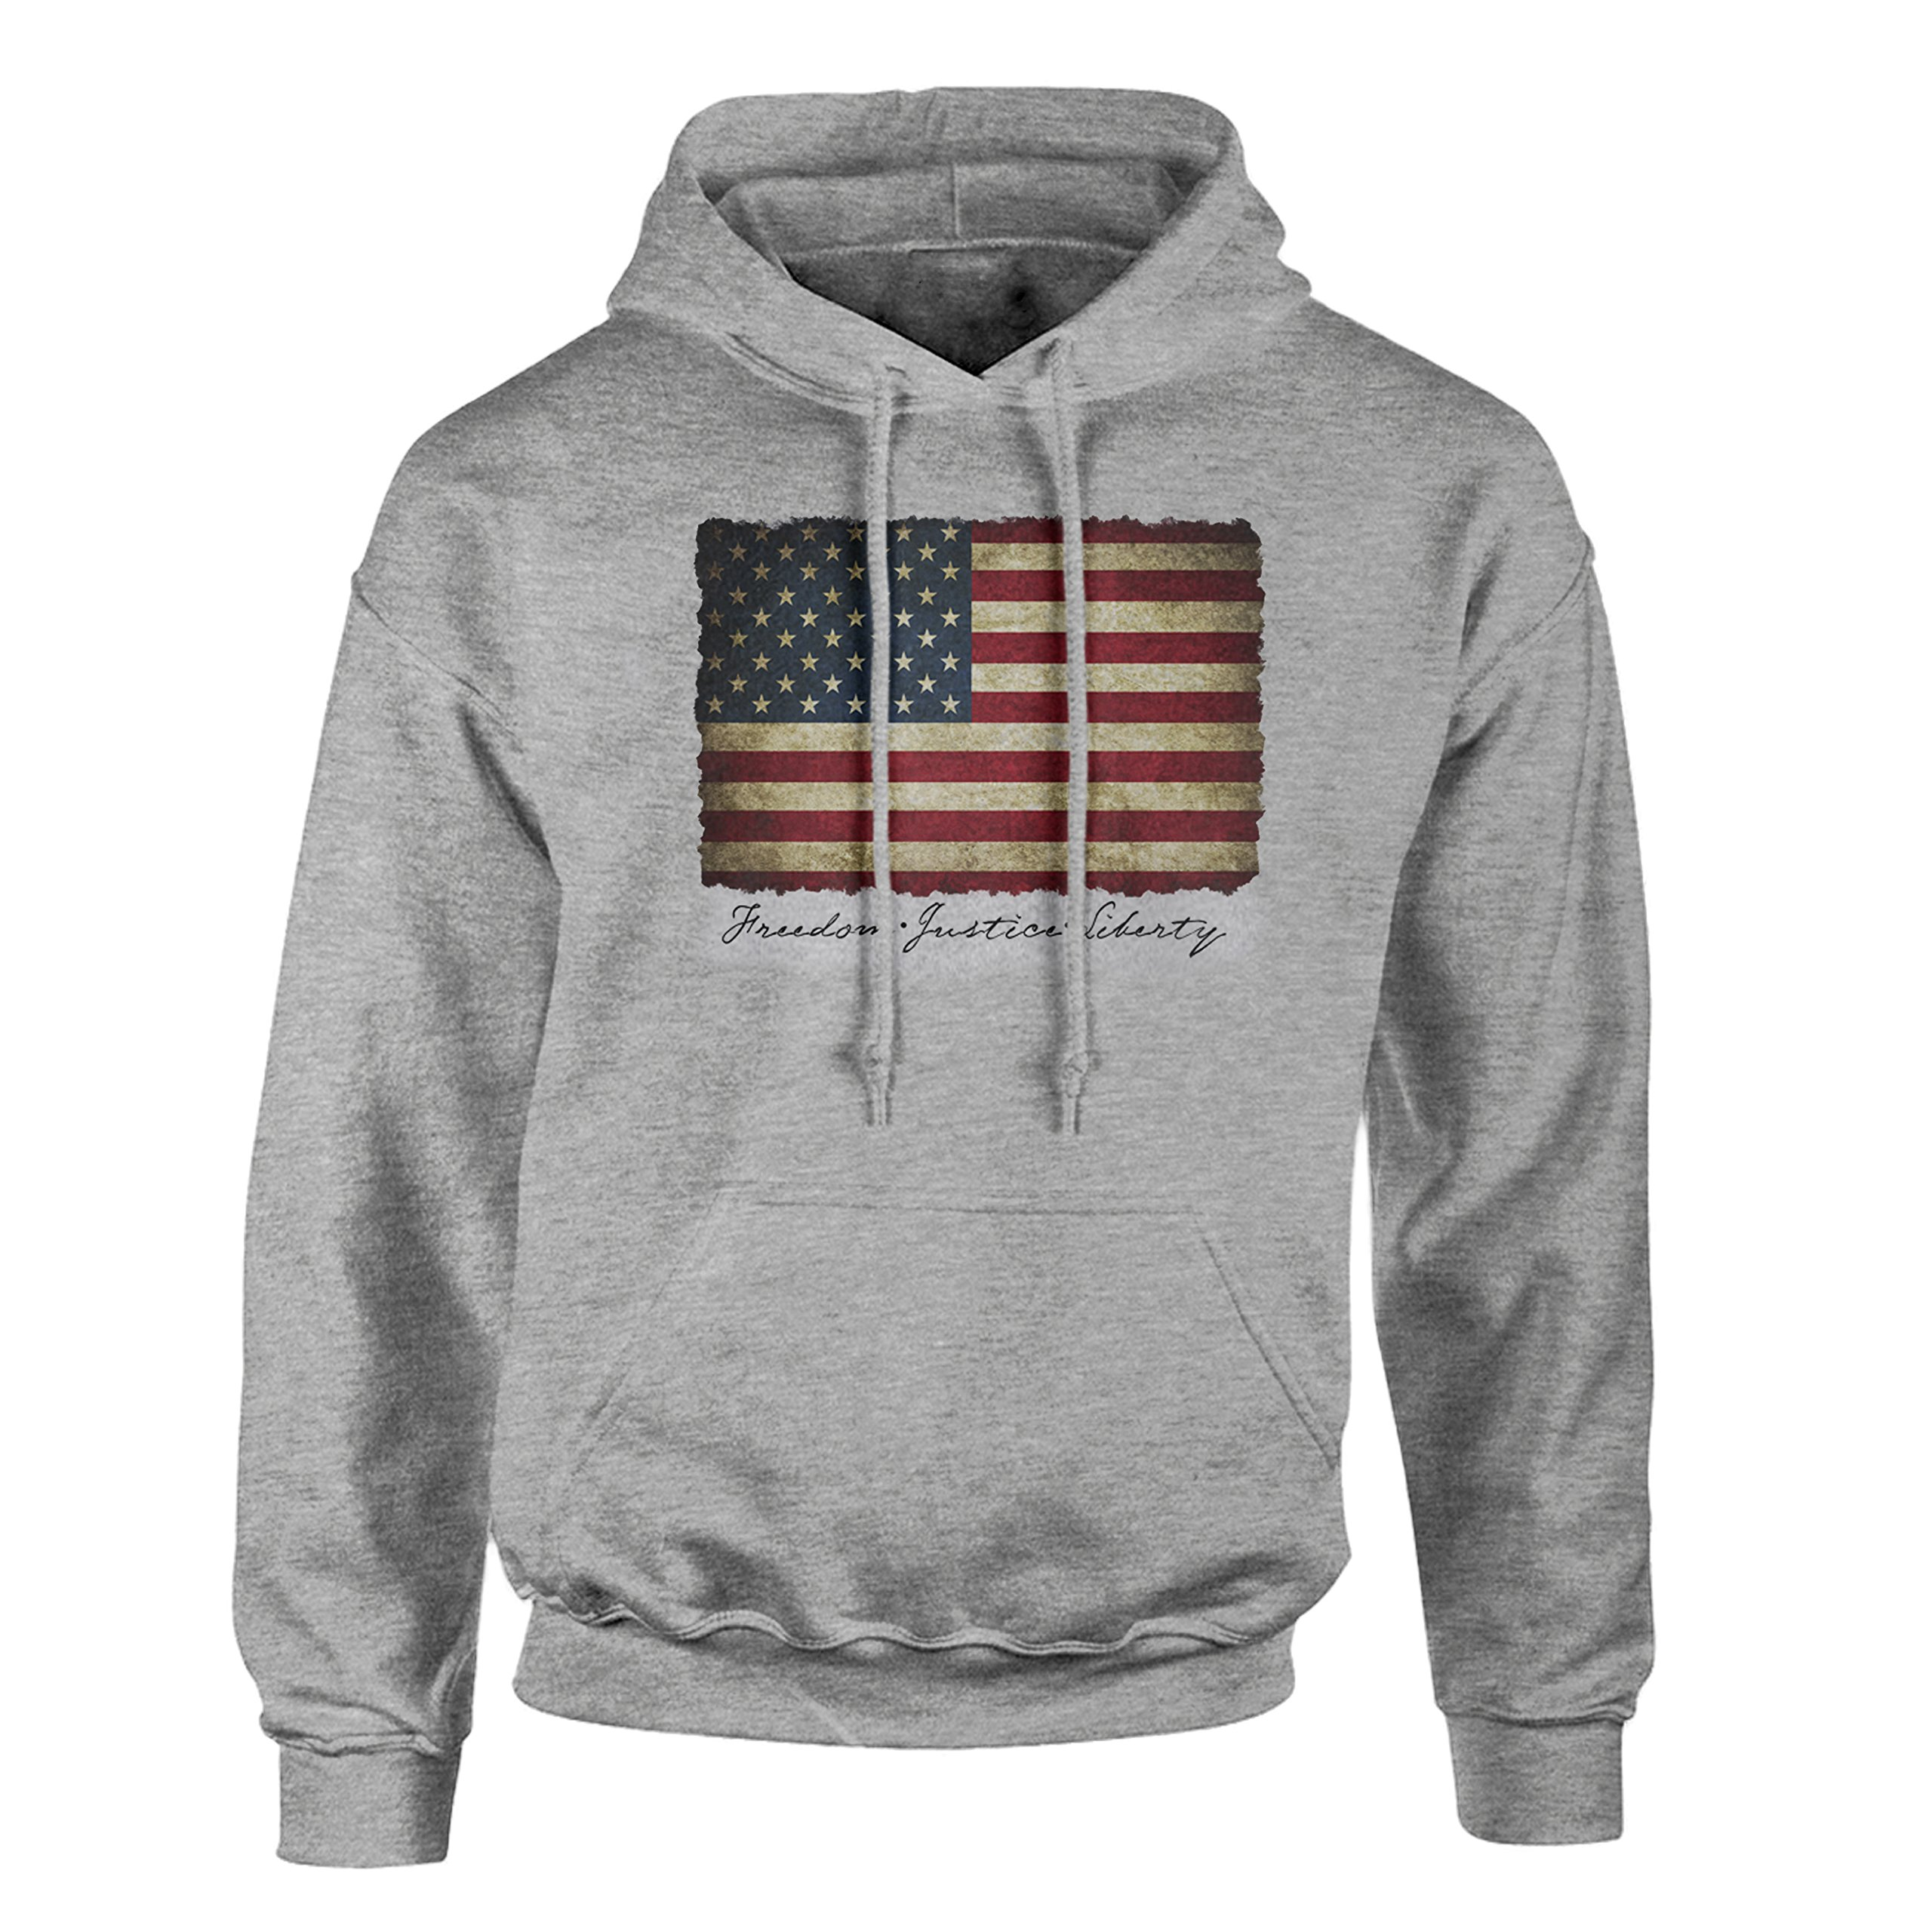 Limited Edition Vintage American Flag Hoodie Pullover Fleece for Men 2XL - Sweatshirt, Gift, Cotton Poly Blend, Ultra Soft